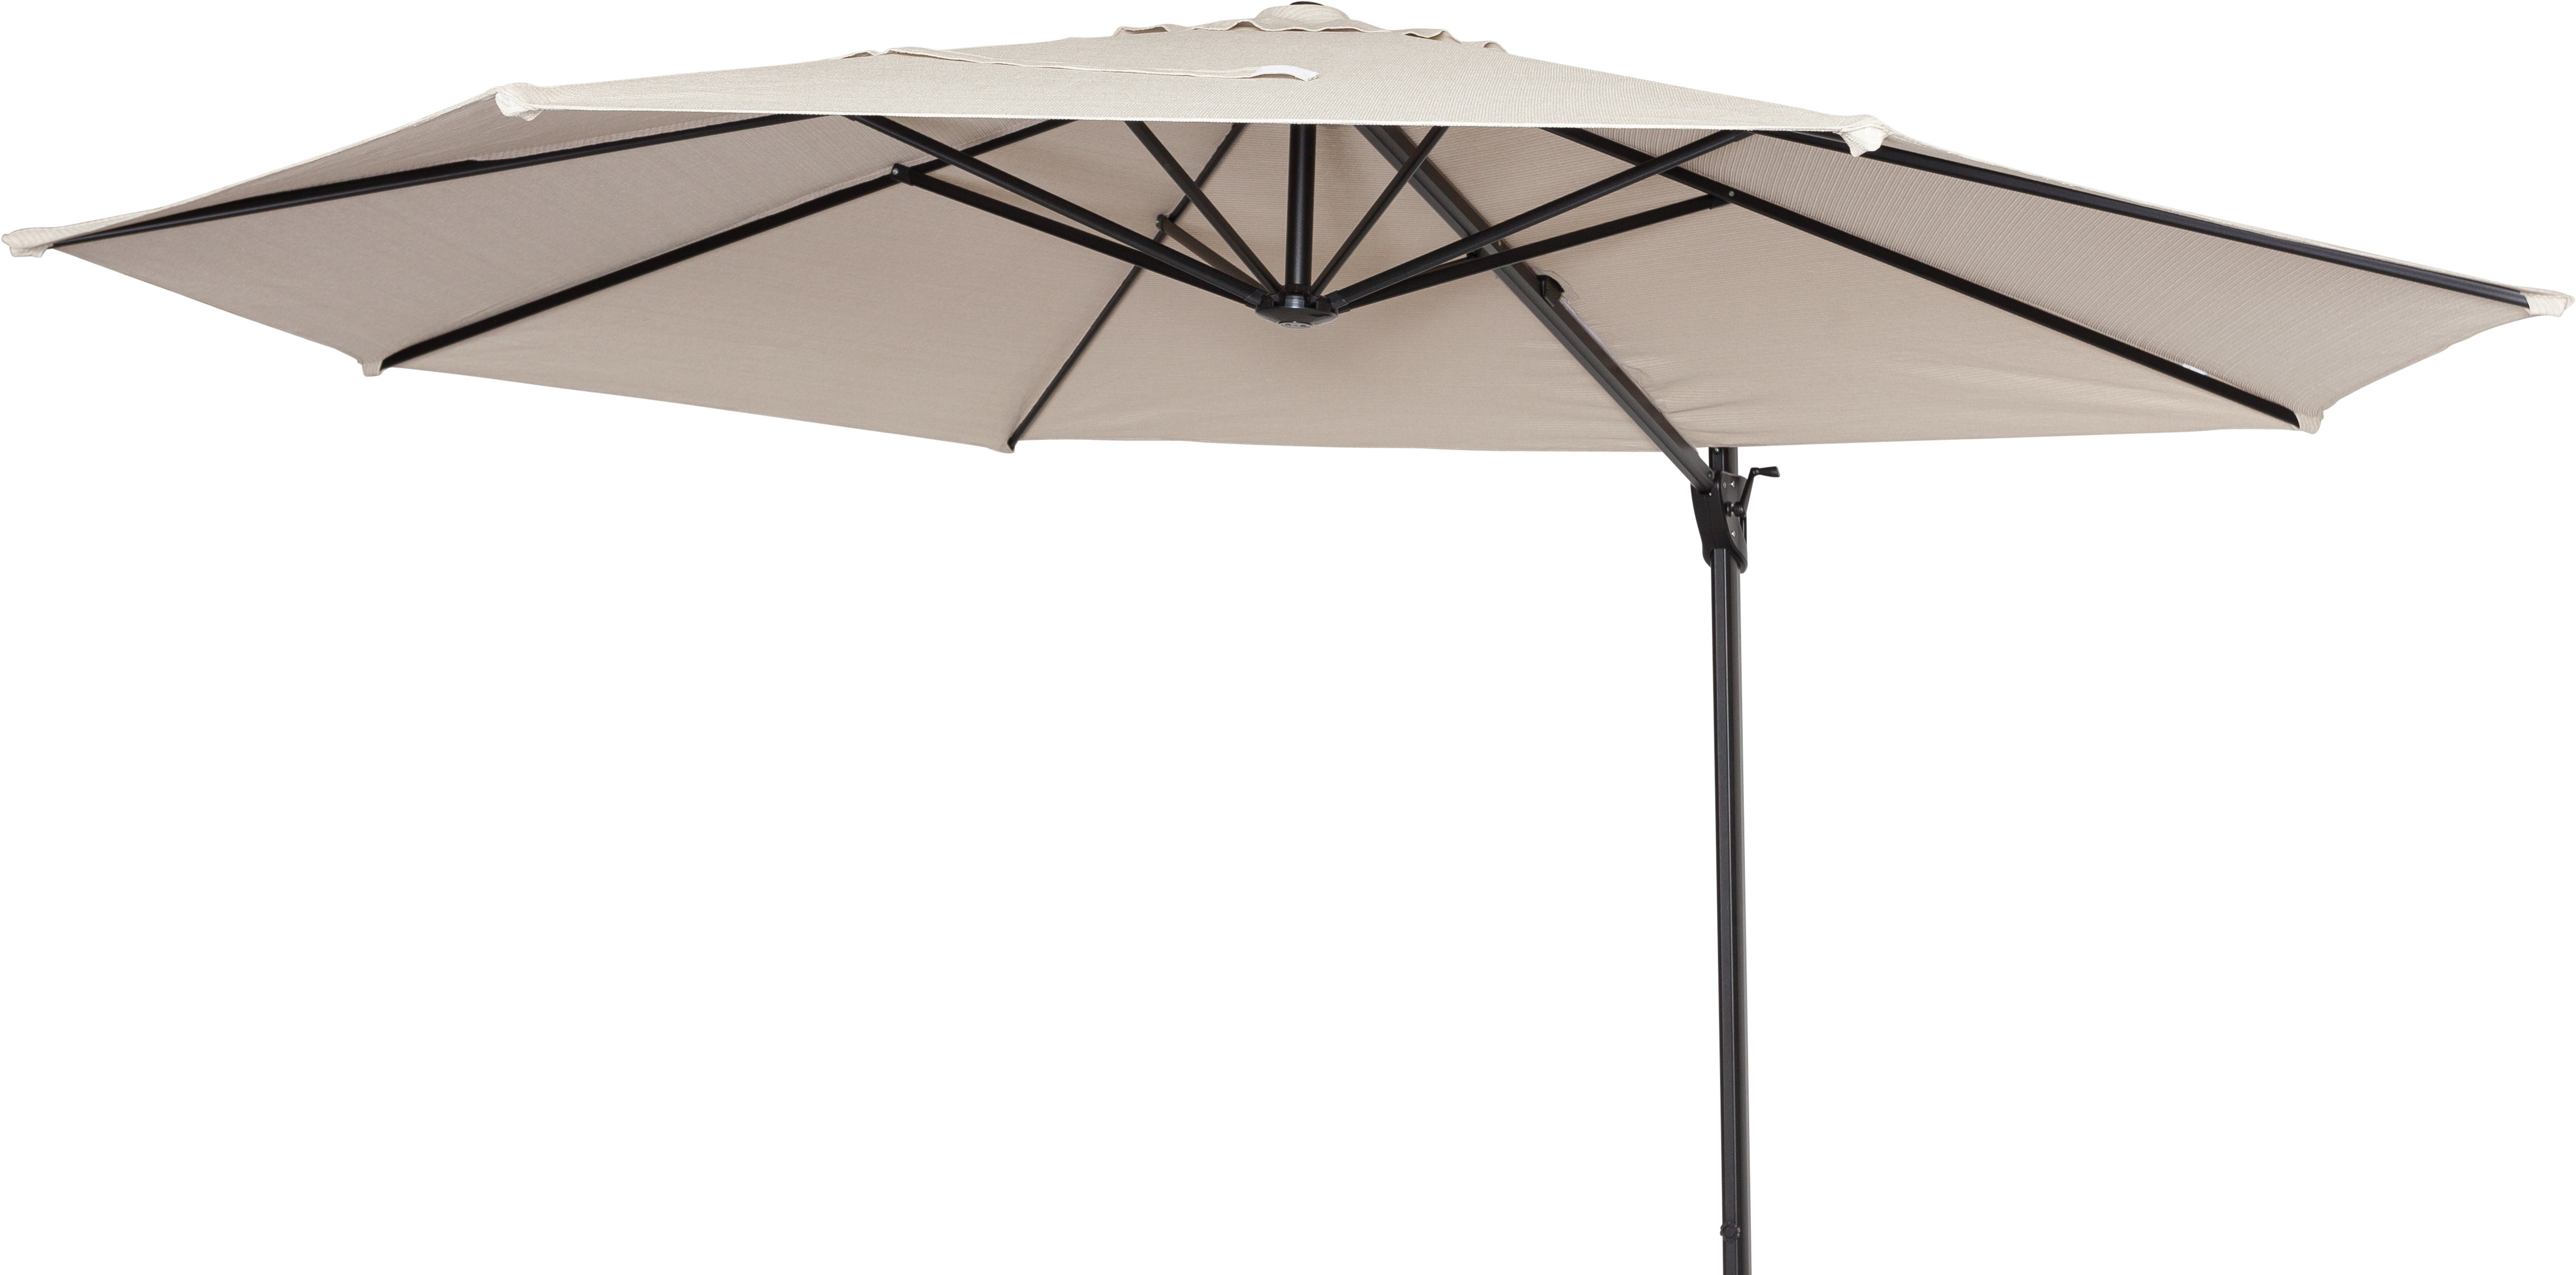 Trendy Maidenhead Cantilever Umbrellas Throughout 12' Cantilever Umbrella (View 7 of 20)